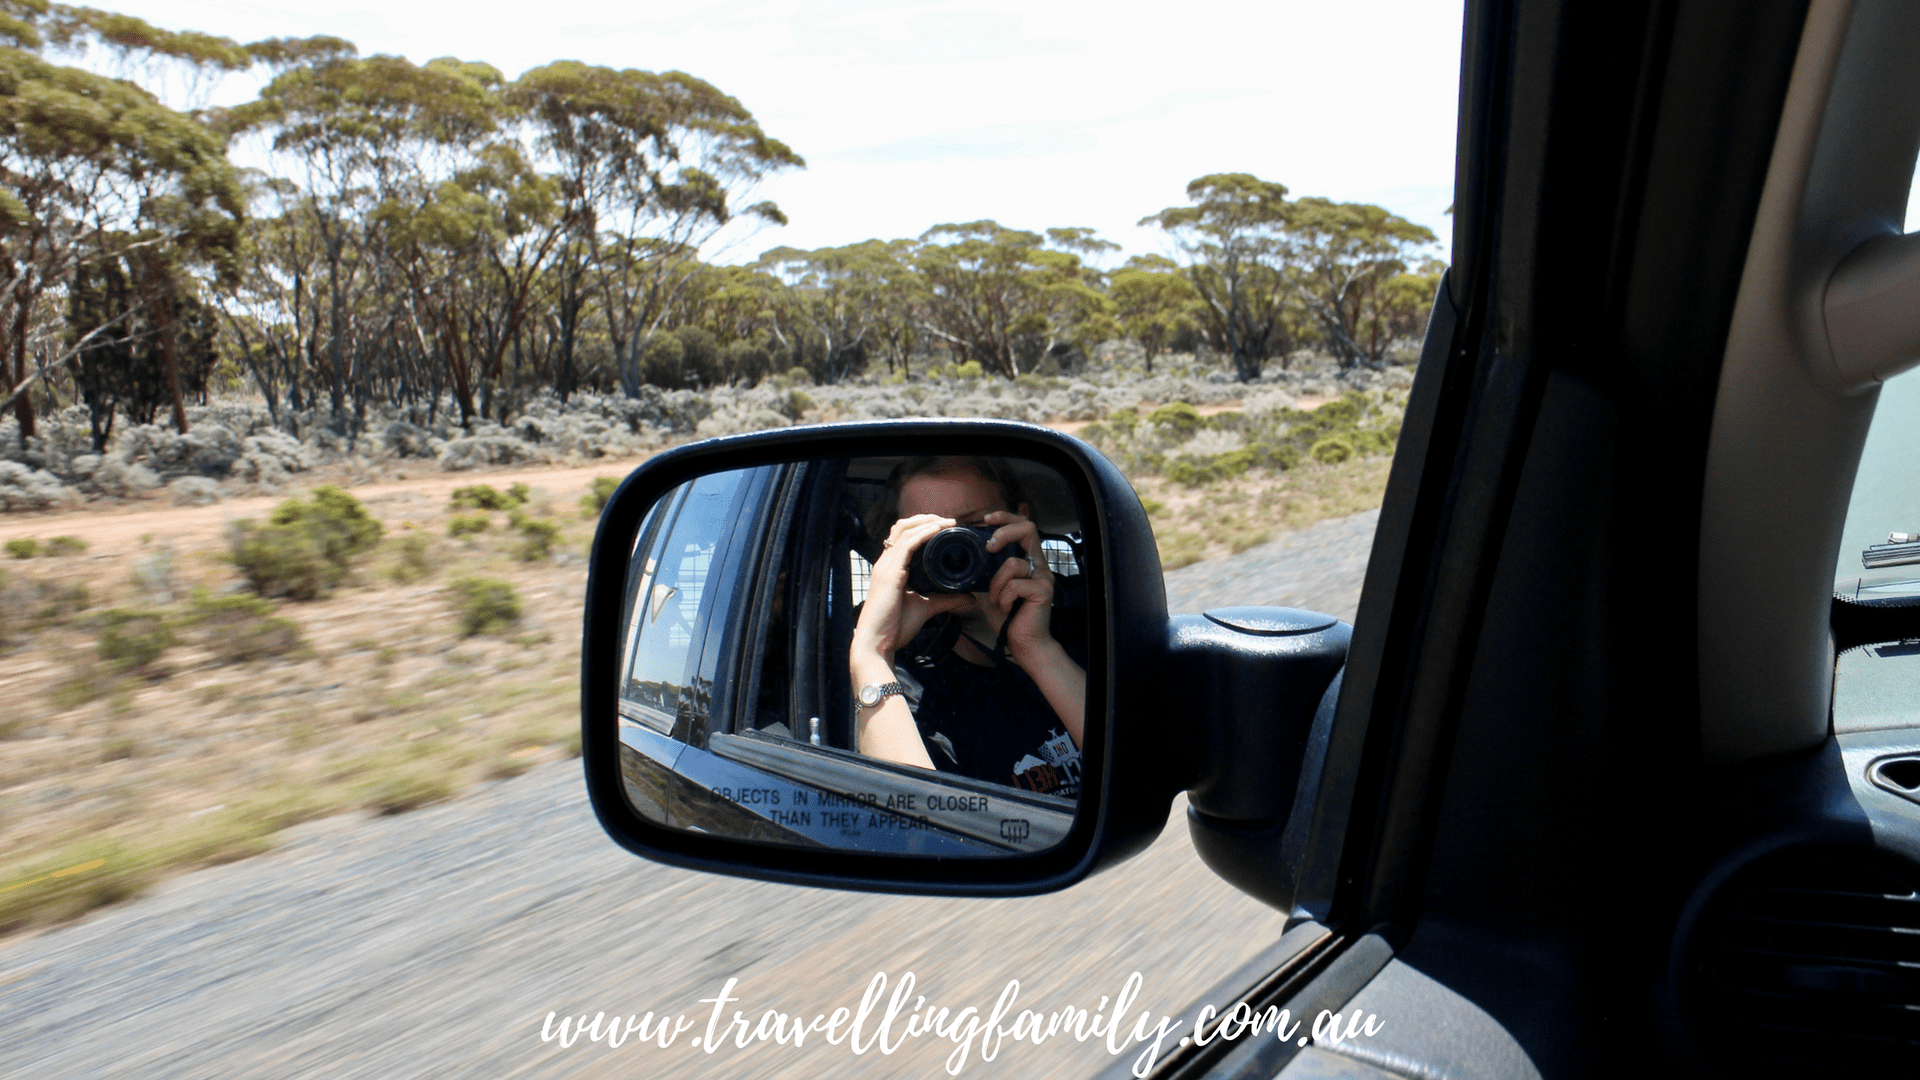 Travelling Family Australia - Crossing the Nullarbor